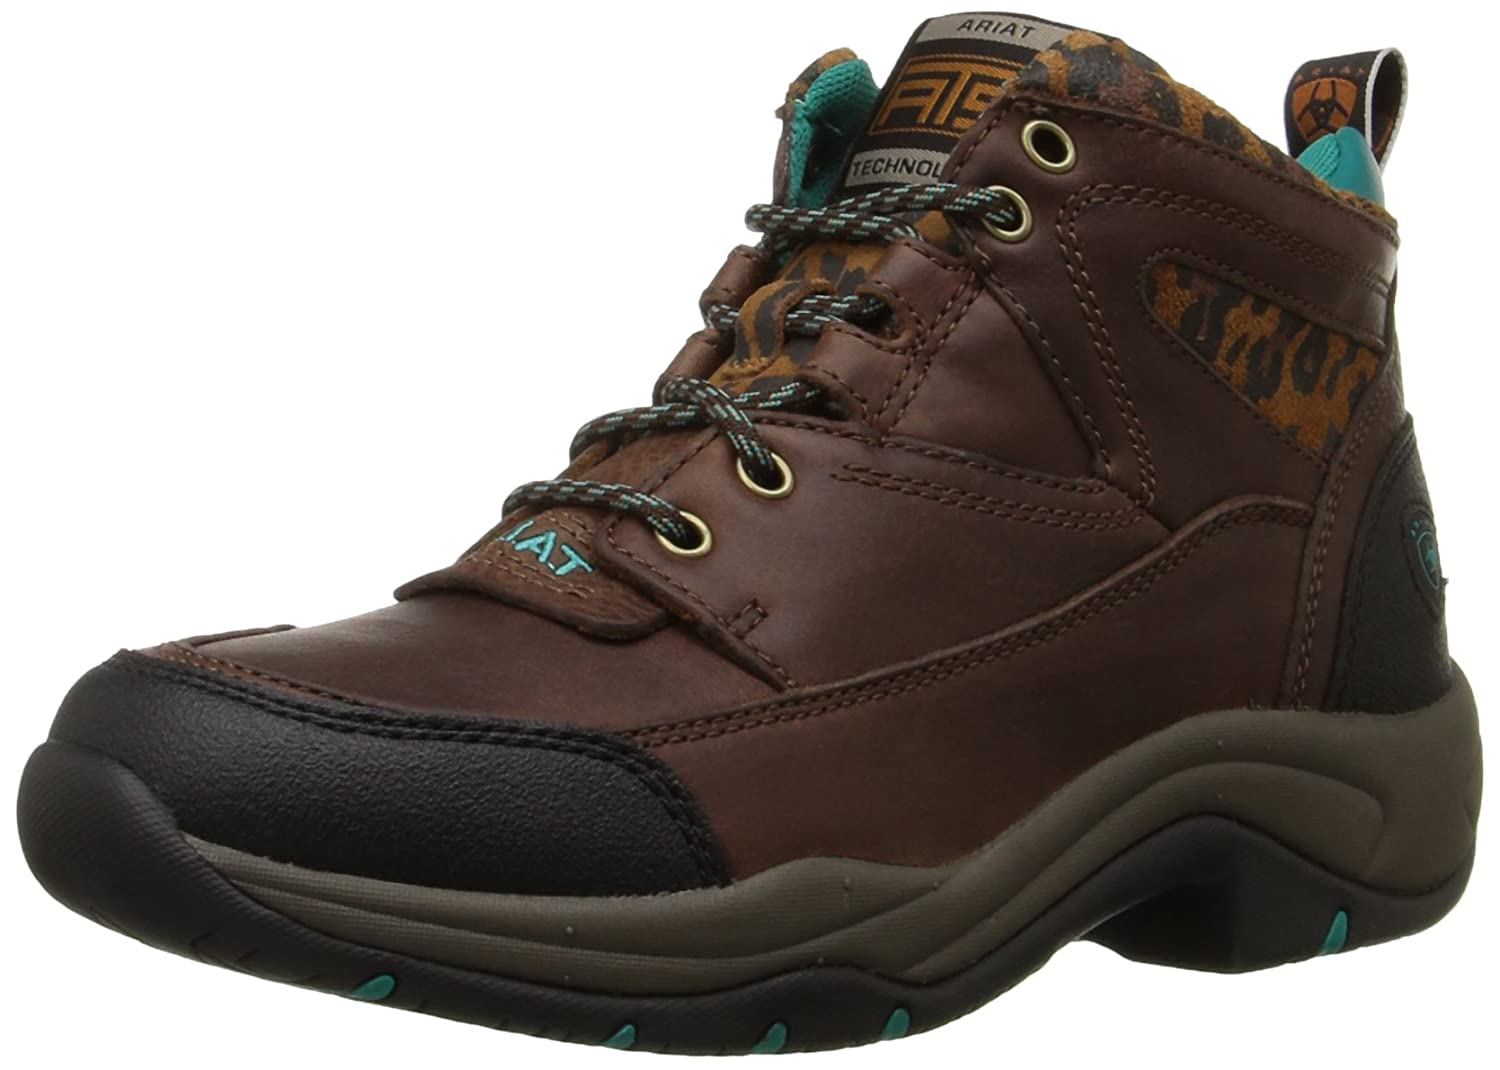 Ariat Women's Terrain Work Boot B01BPW9R8M 10 B(M) US|Tundra